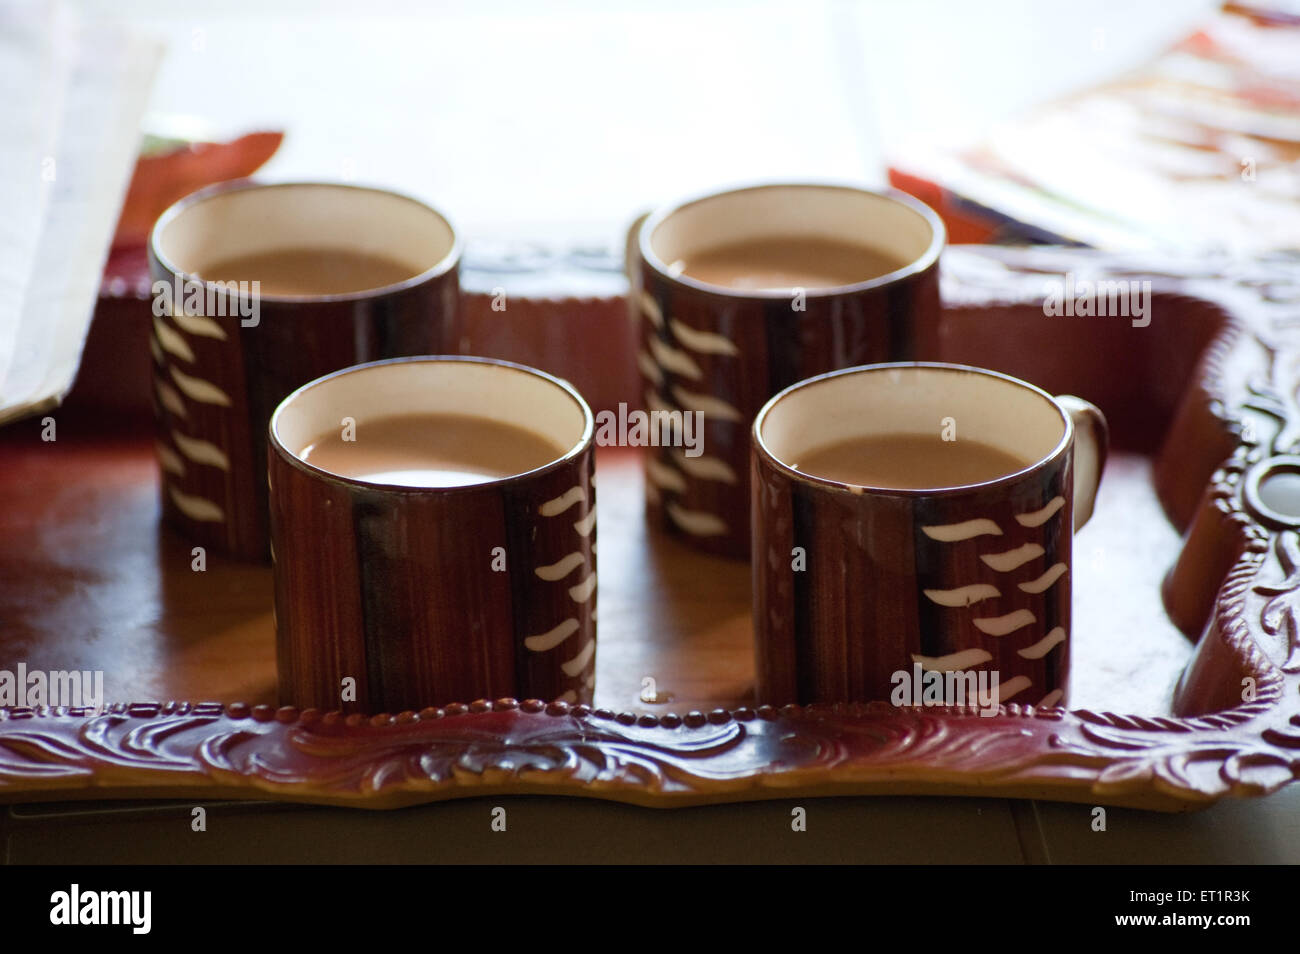 Drinks ; tea cups in plastic tray - Stock Image